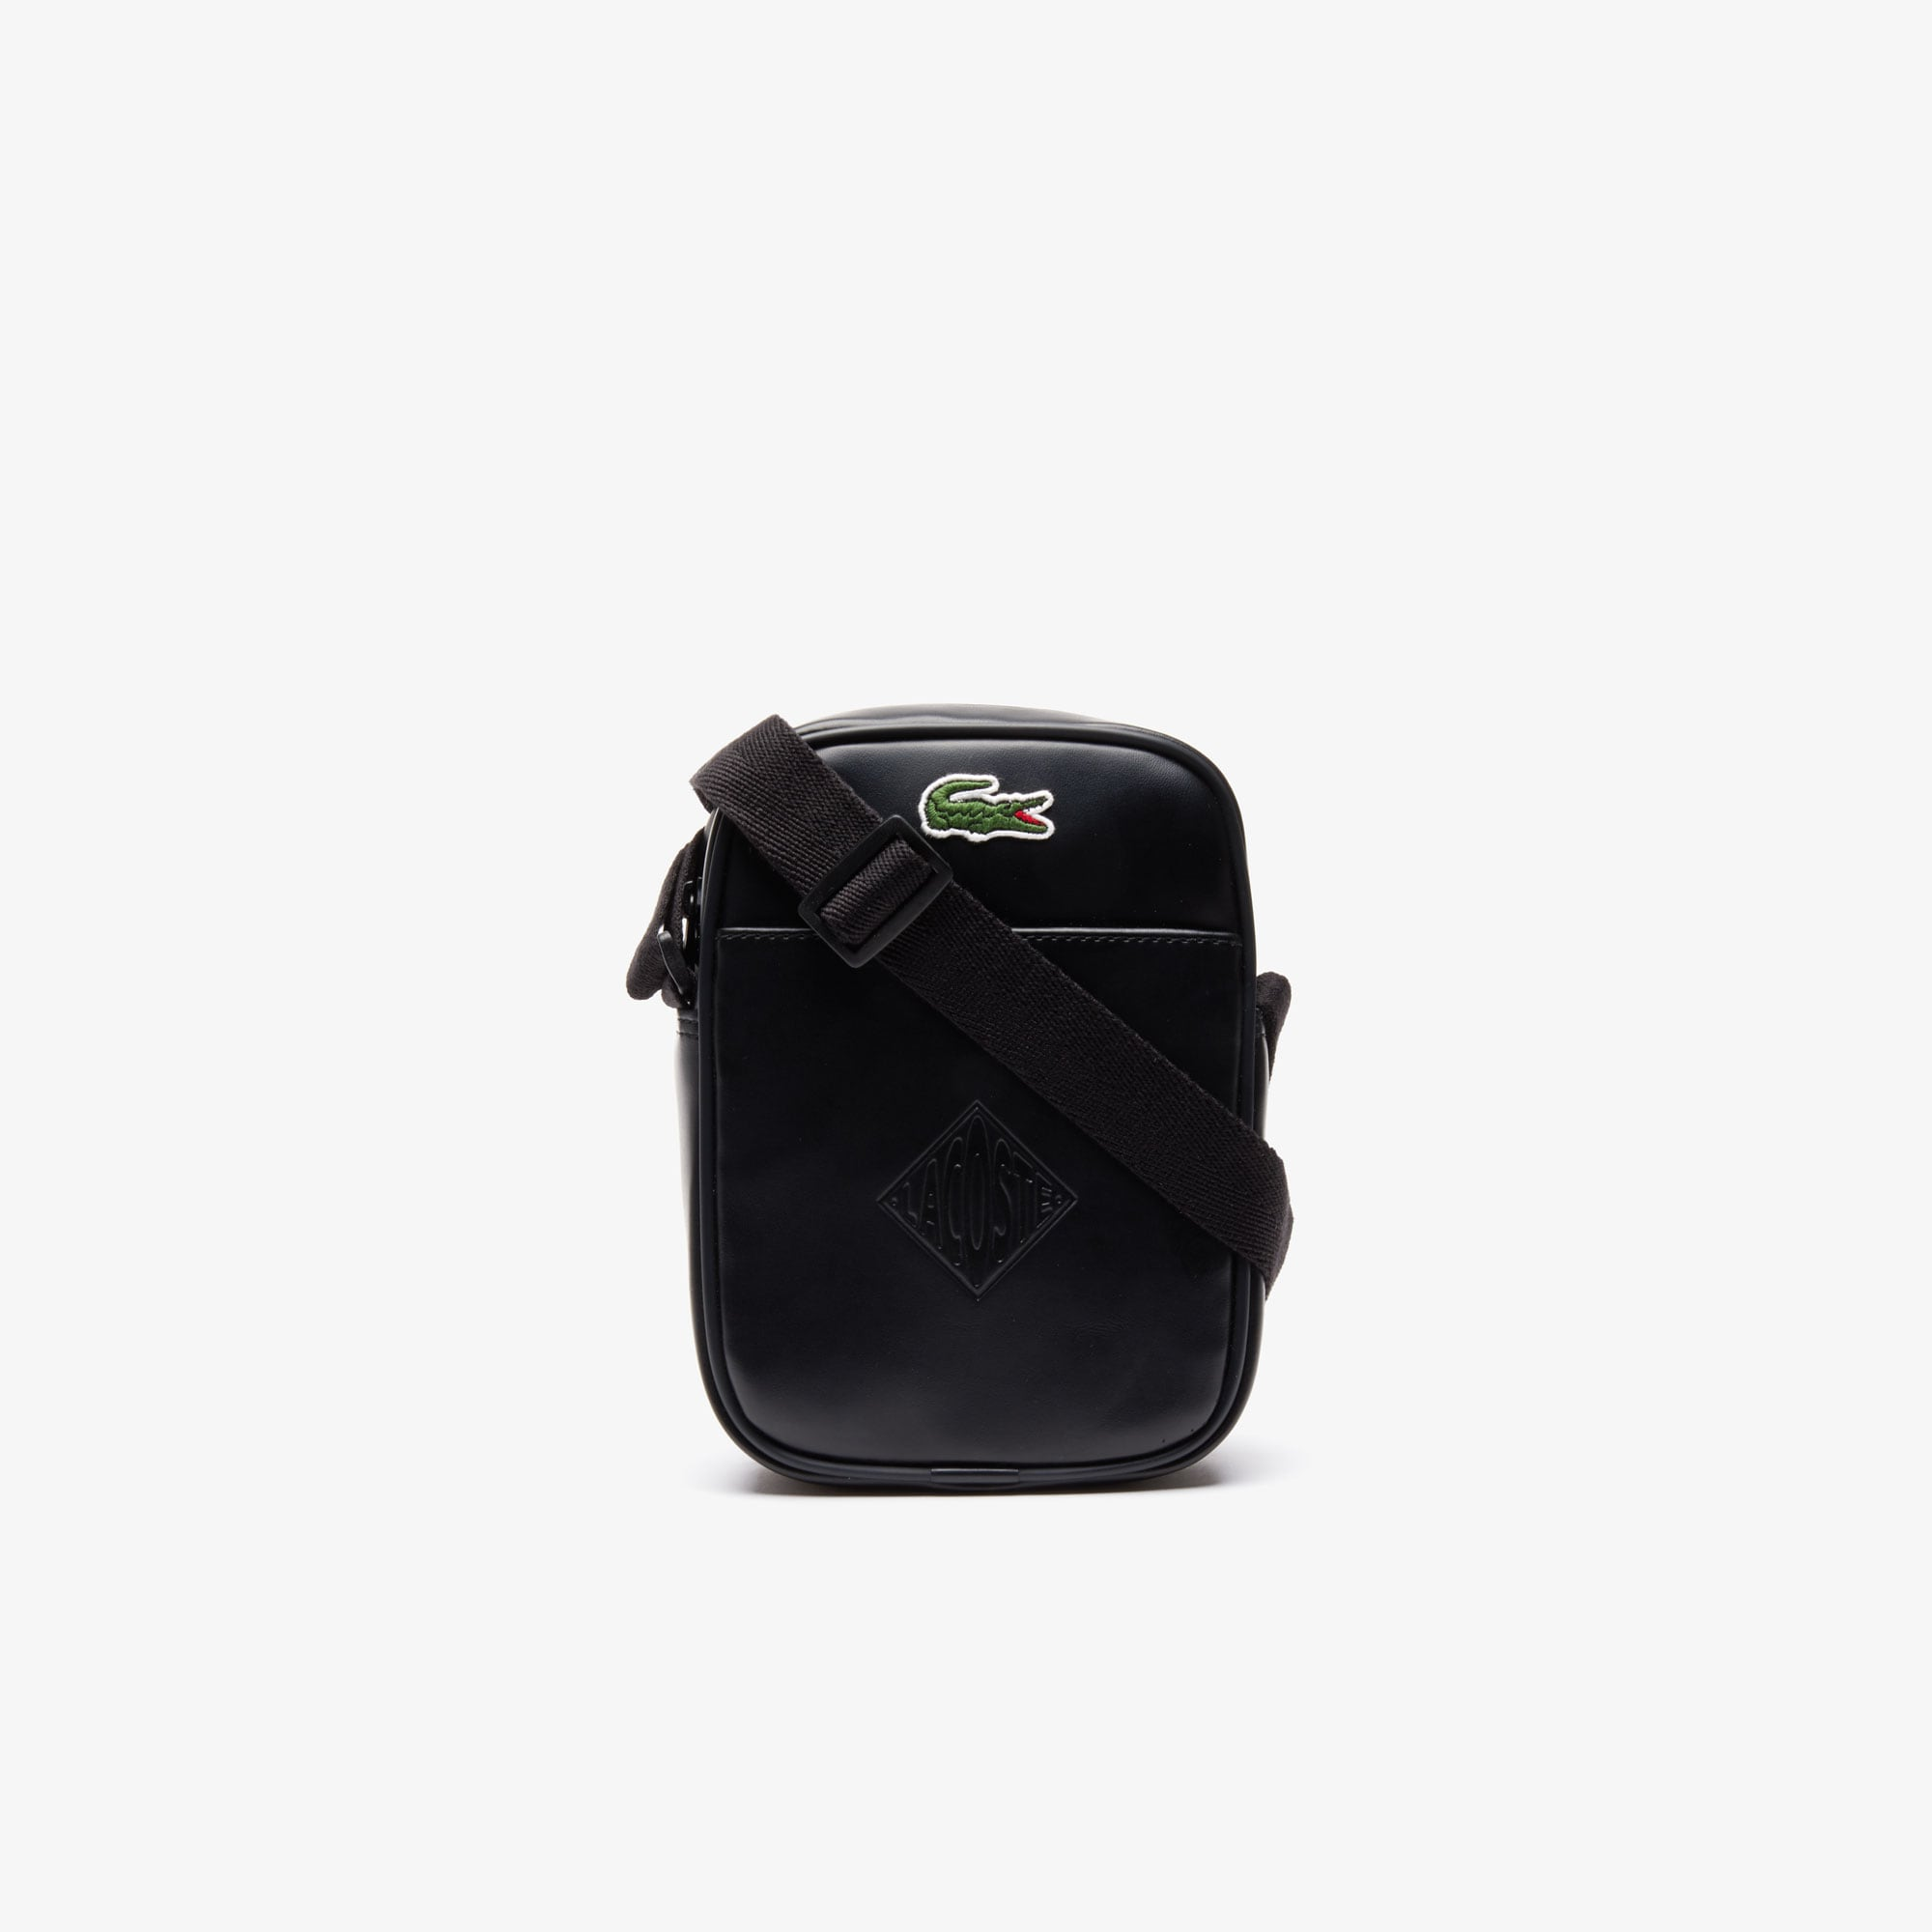 f05b5f4259 Backpacks & Bags for men | Leather goods | LACOSTE